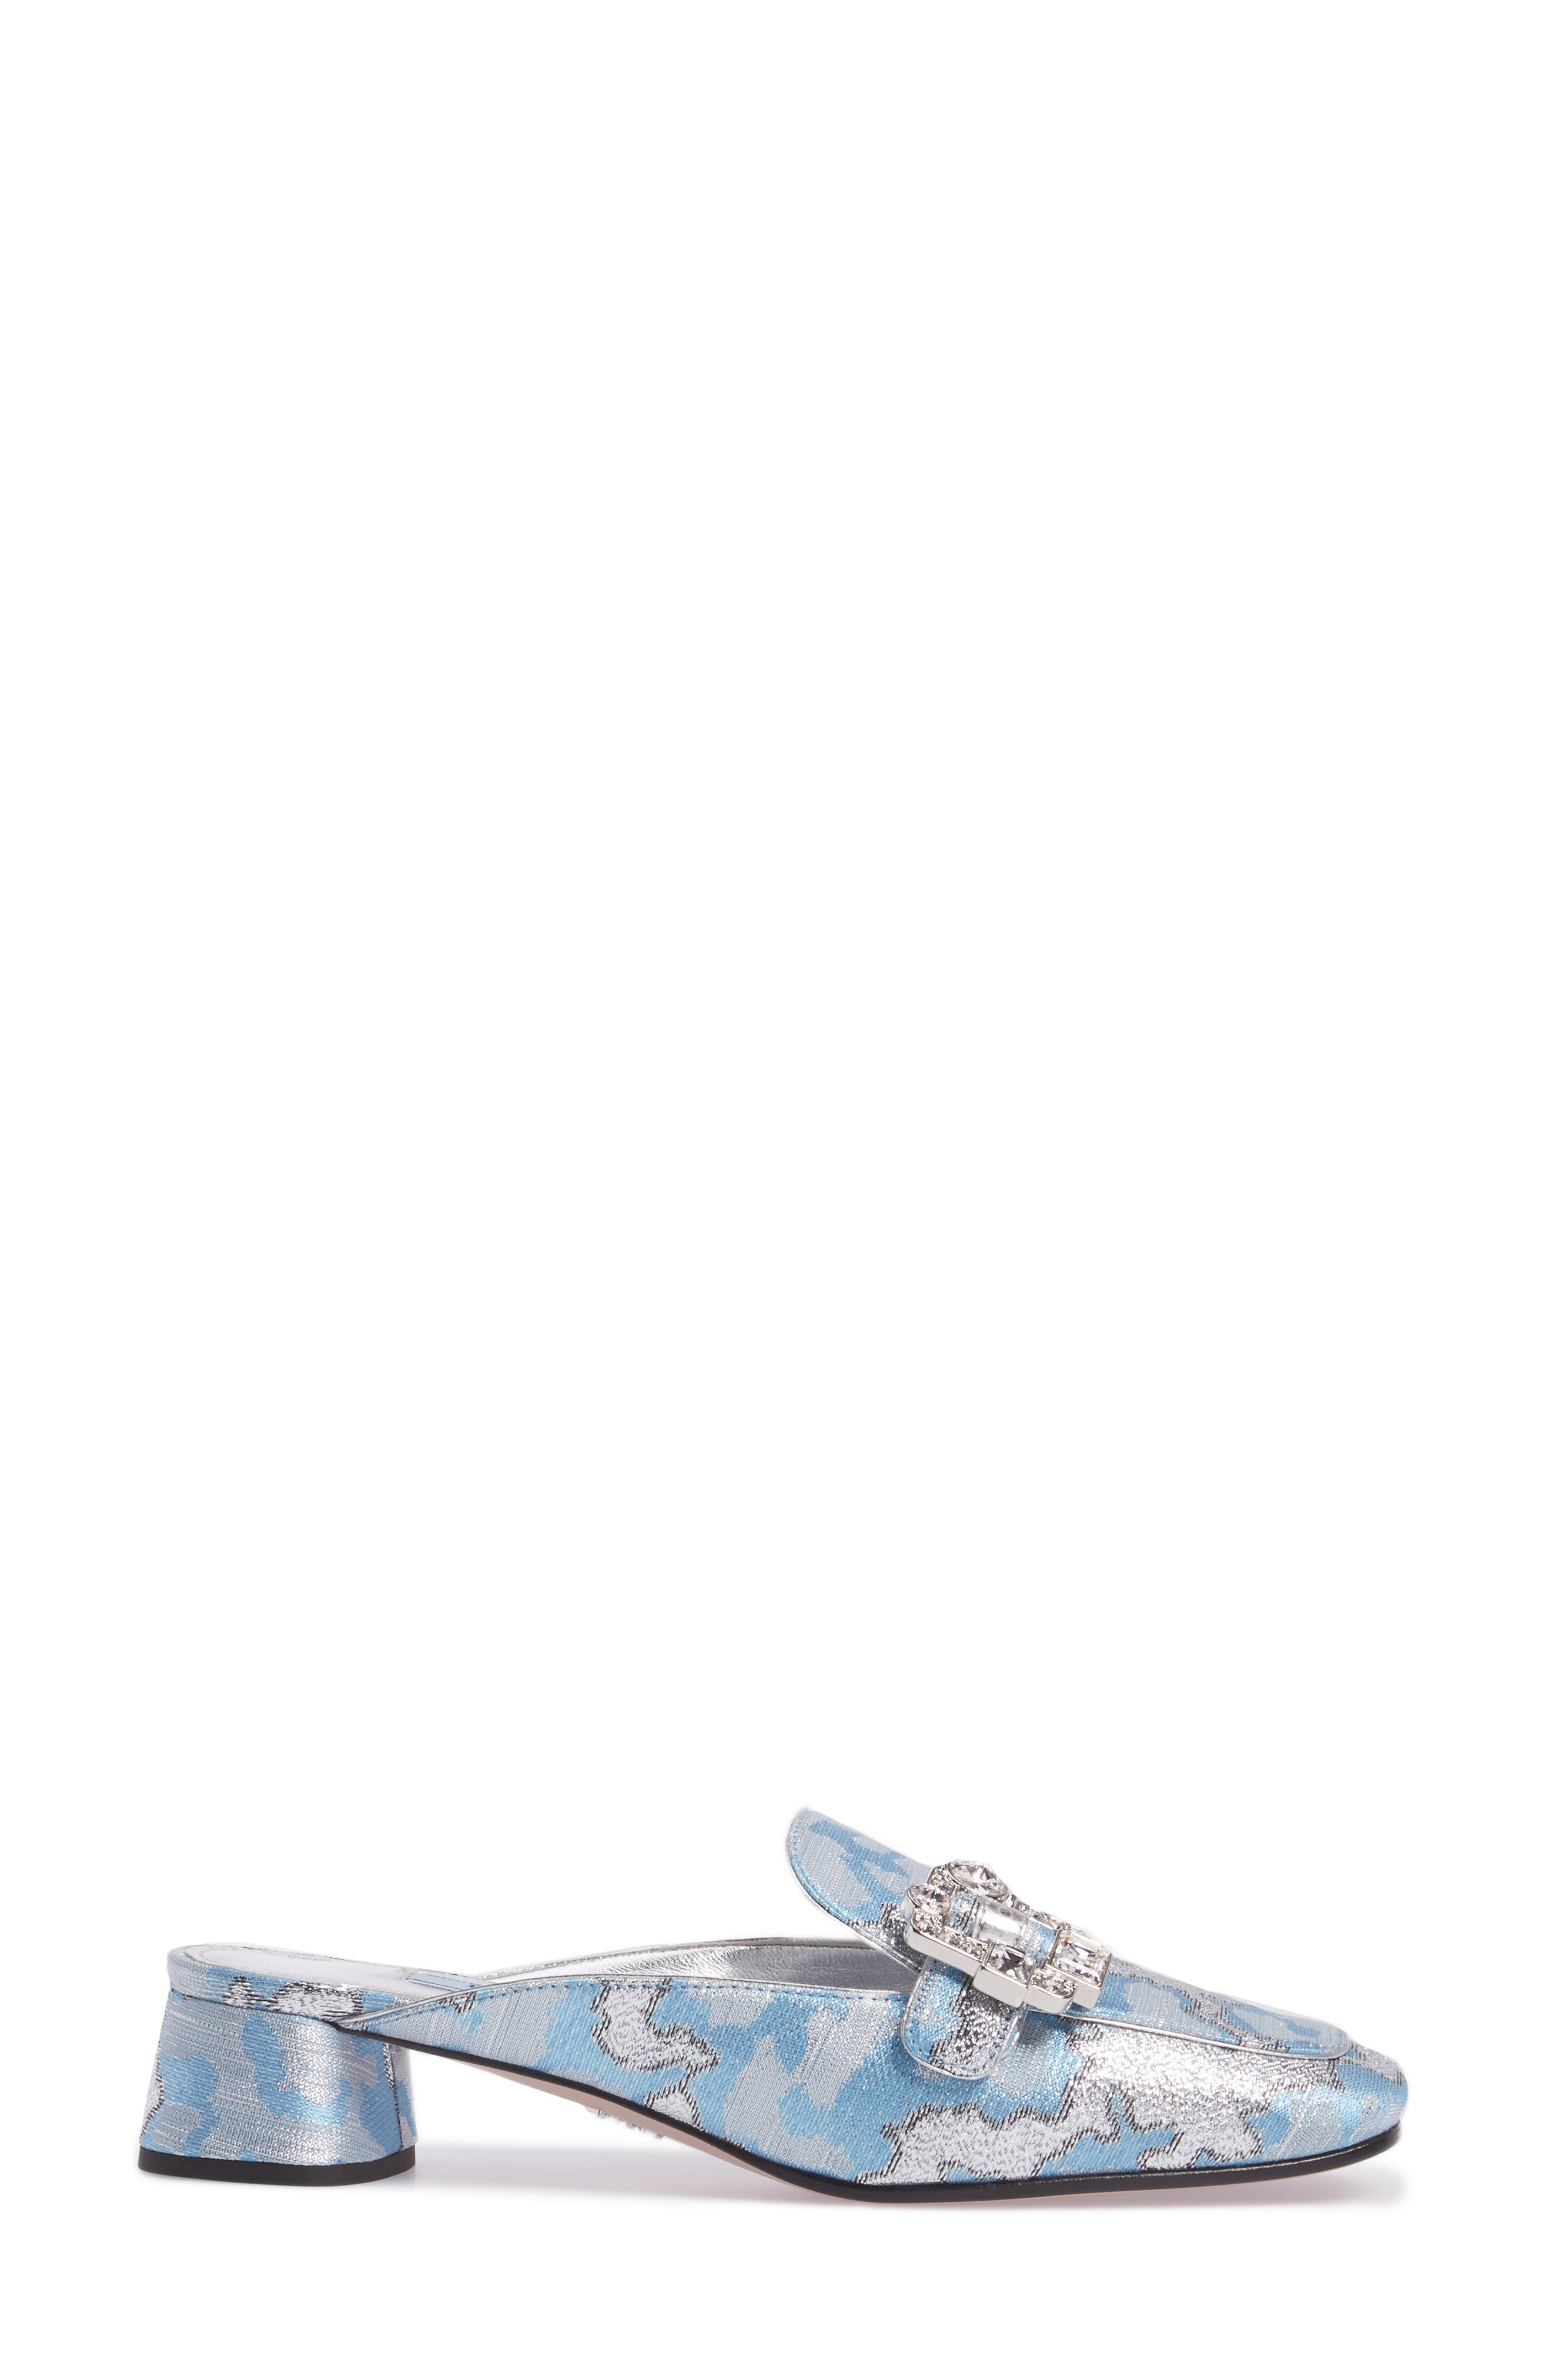 Crystal Buckle Loafer Mule,                             Alternate thumbnail 3, color,                             425